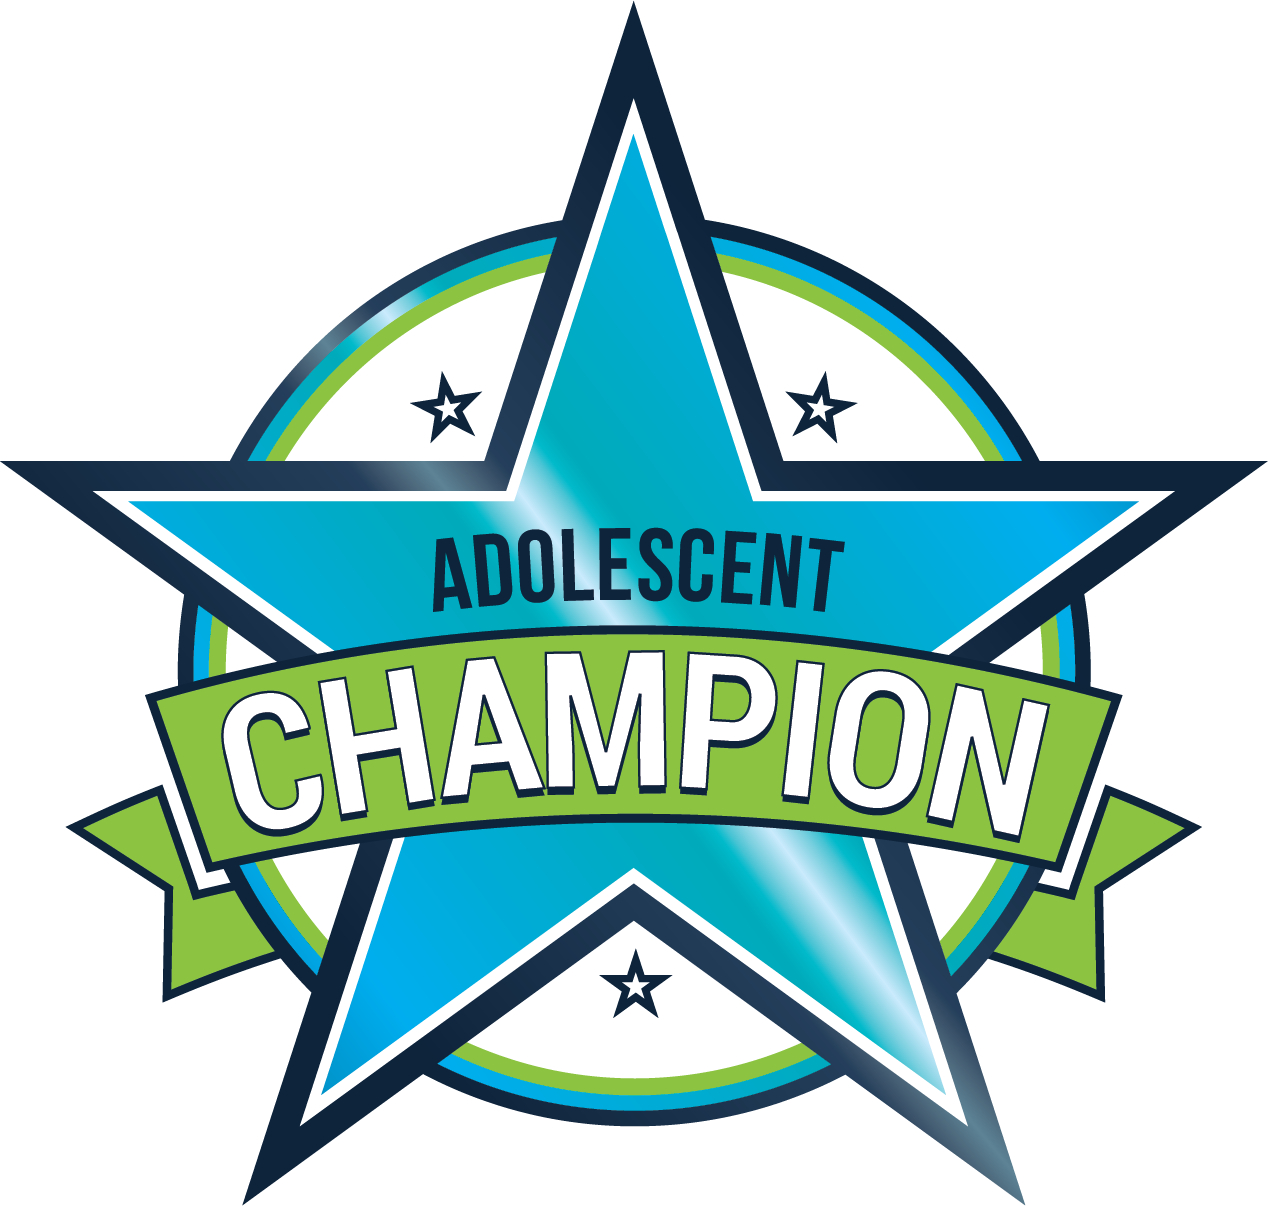 adolescentchampion_ac_metallic